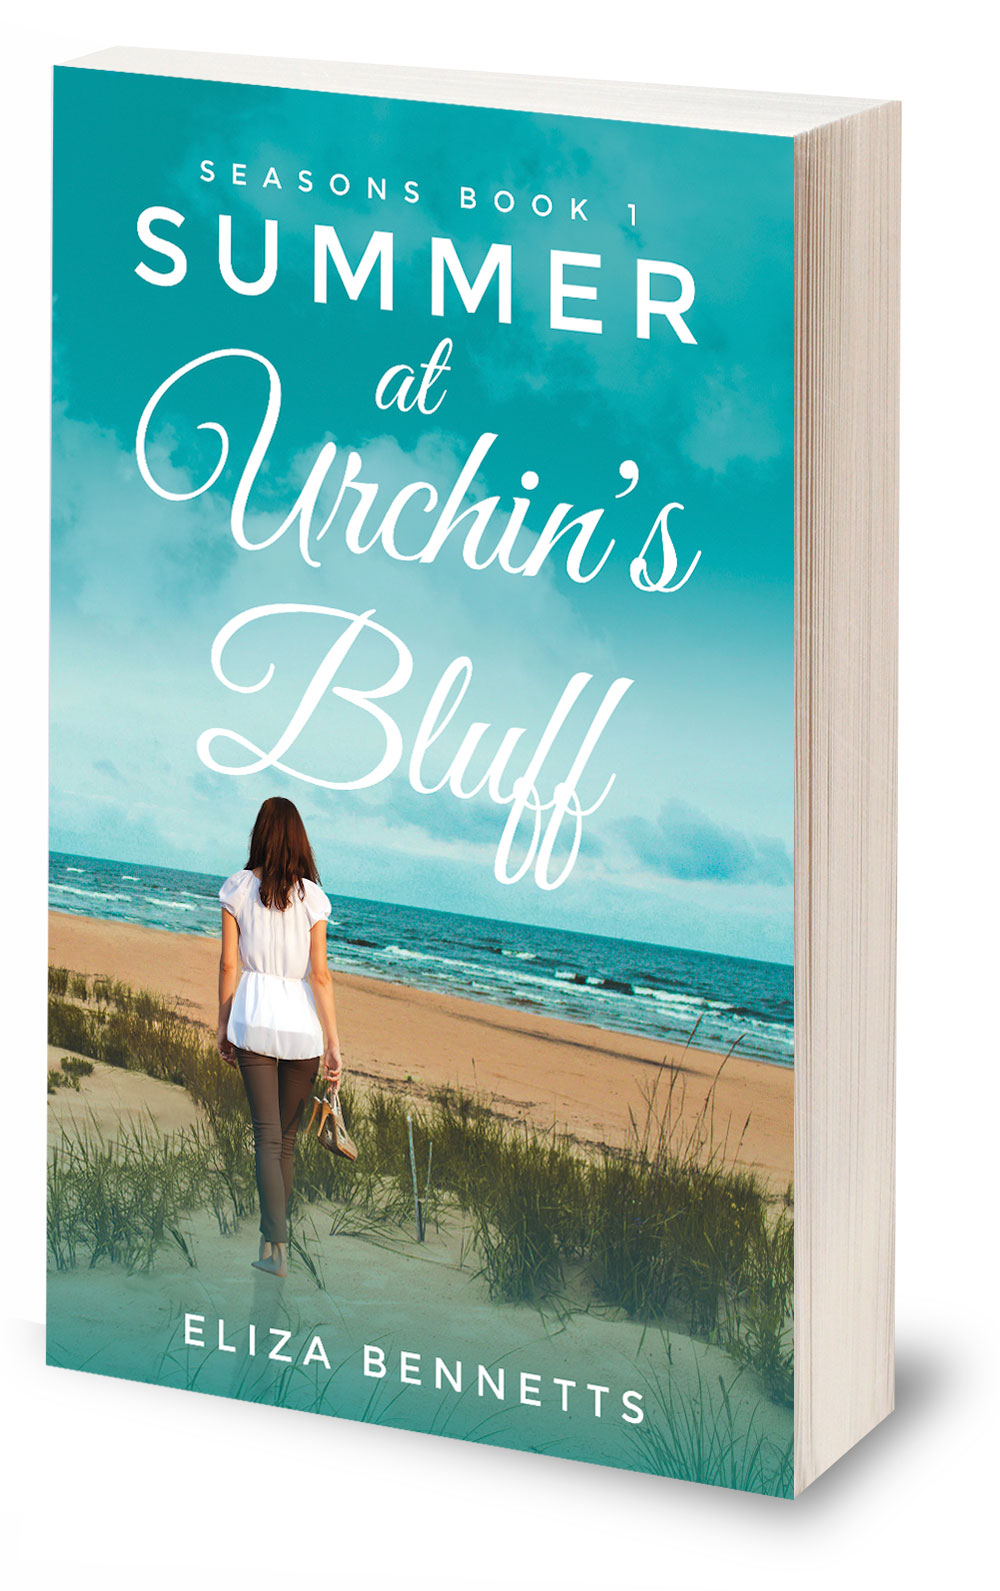 Summer-at-Urchin's-Bluff_3D-cover.jpg